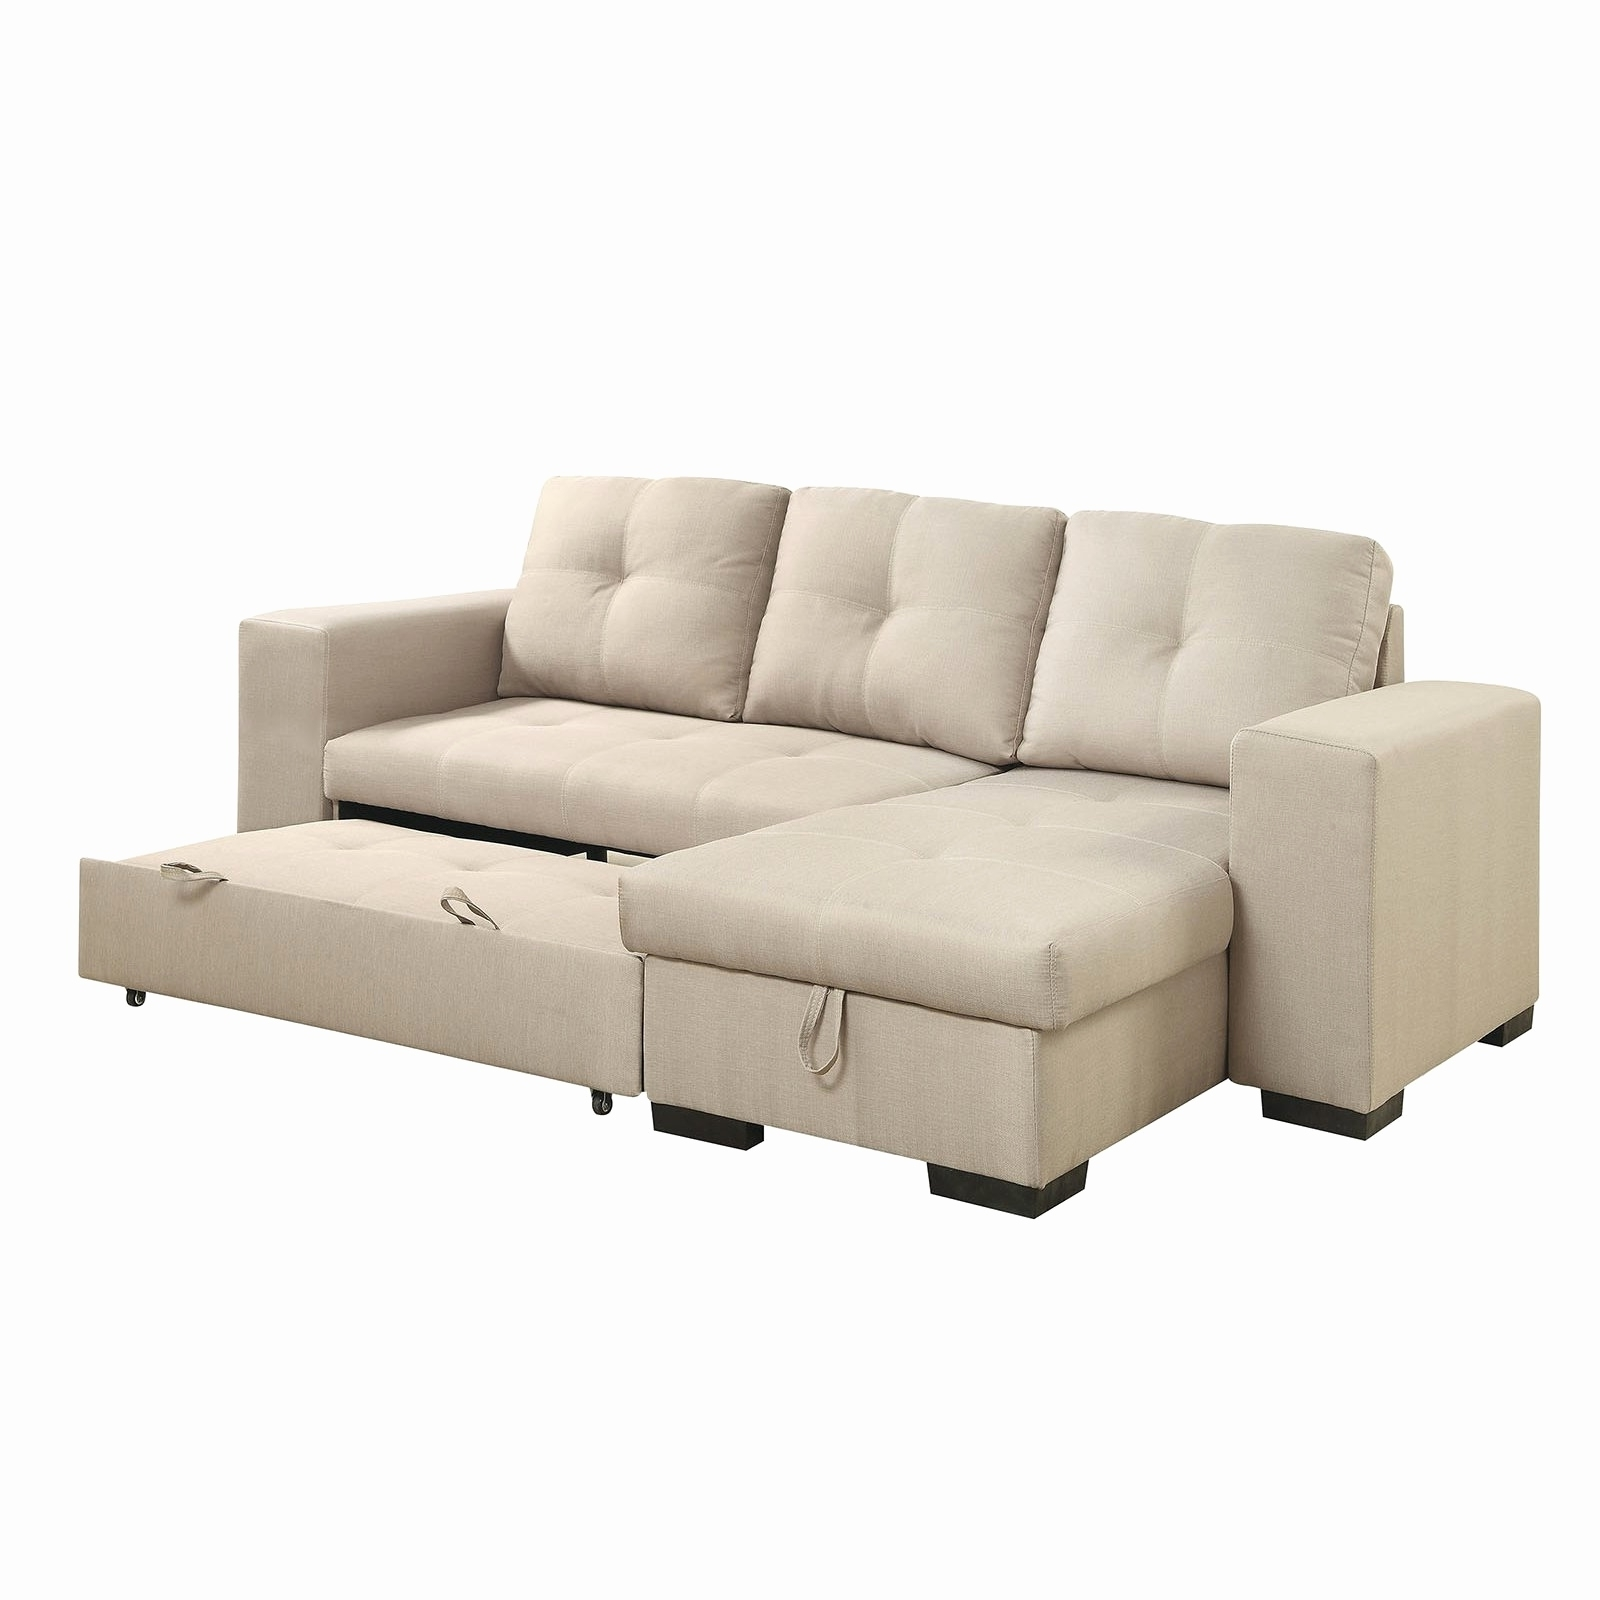 Sleeper Chaise Lounges Intended For Trendy Sofa : Leather Sleeper Sofa With Chaise Best Of Chaise Lounge (View 12 of 15)